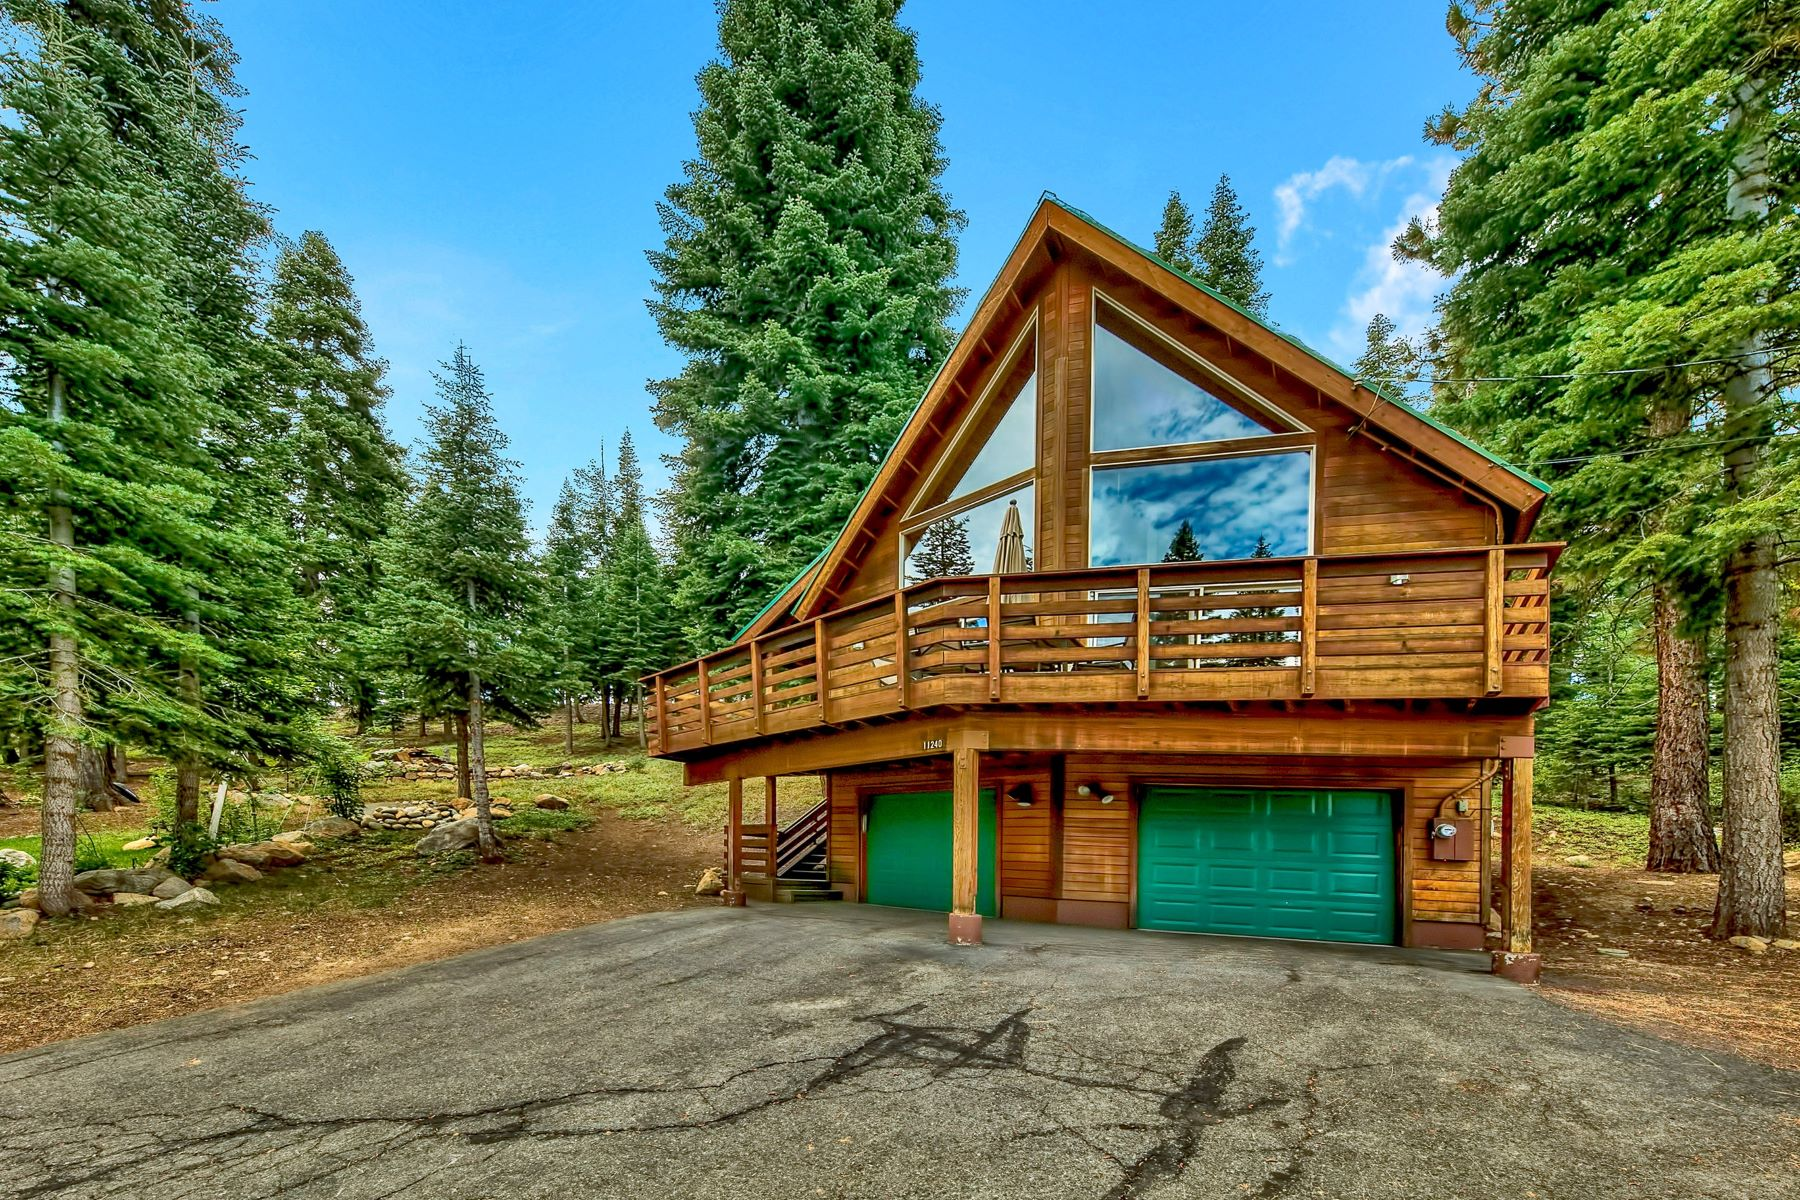 Property for Active at 11240 Skislope Way, Truckee, CA 11240 Skislope Way Truckee, California 96161 United States